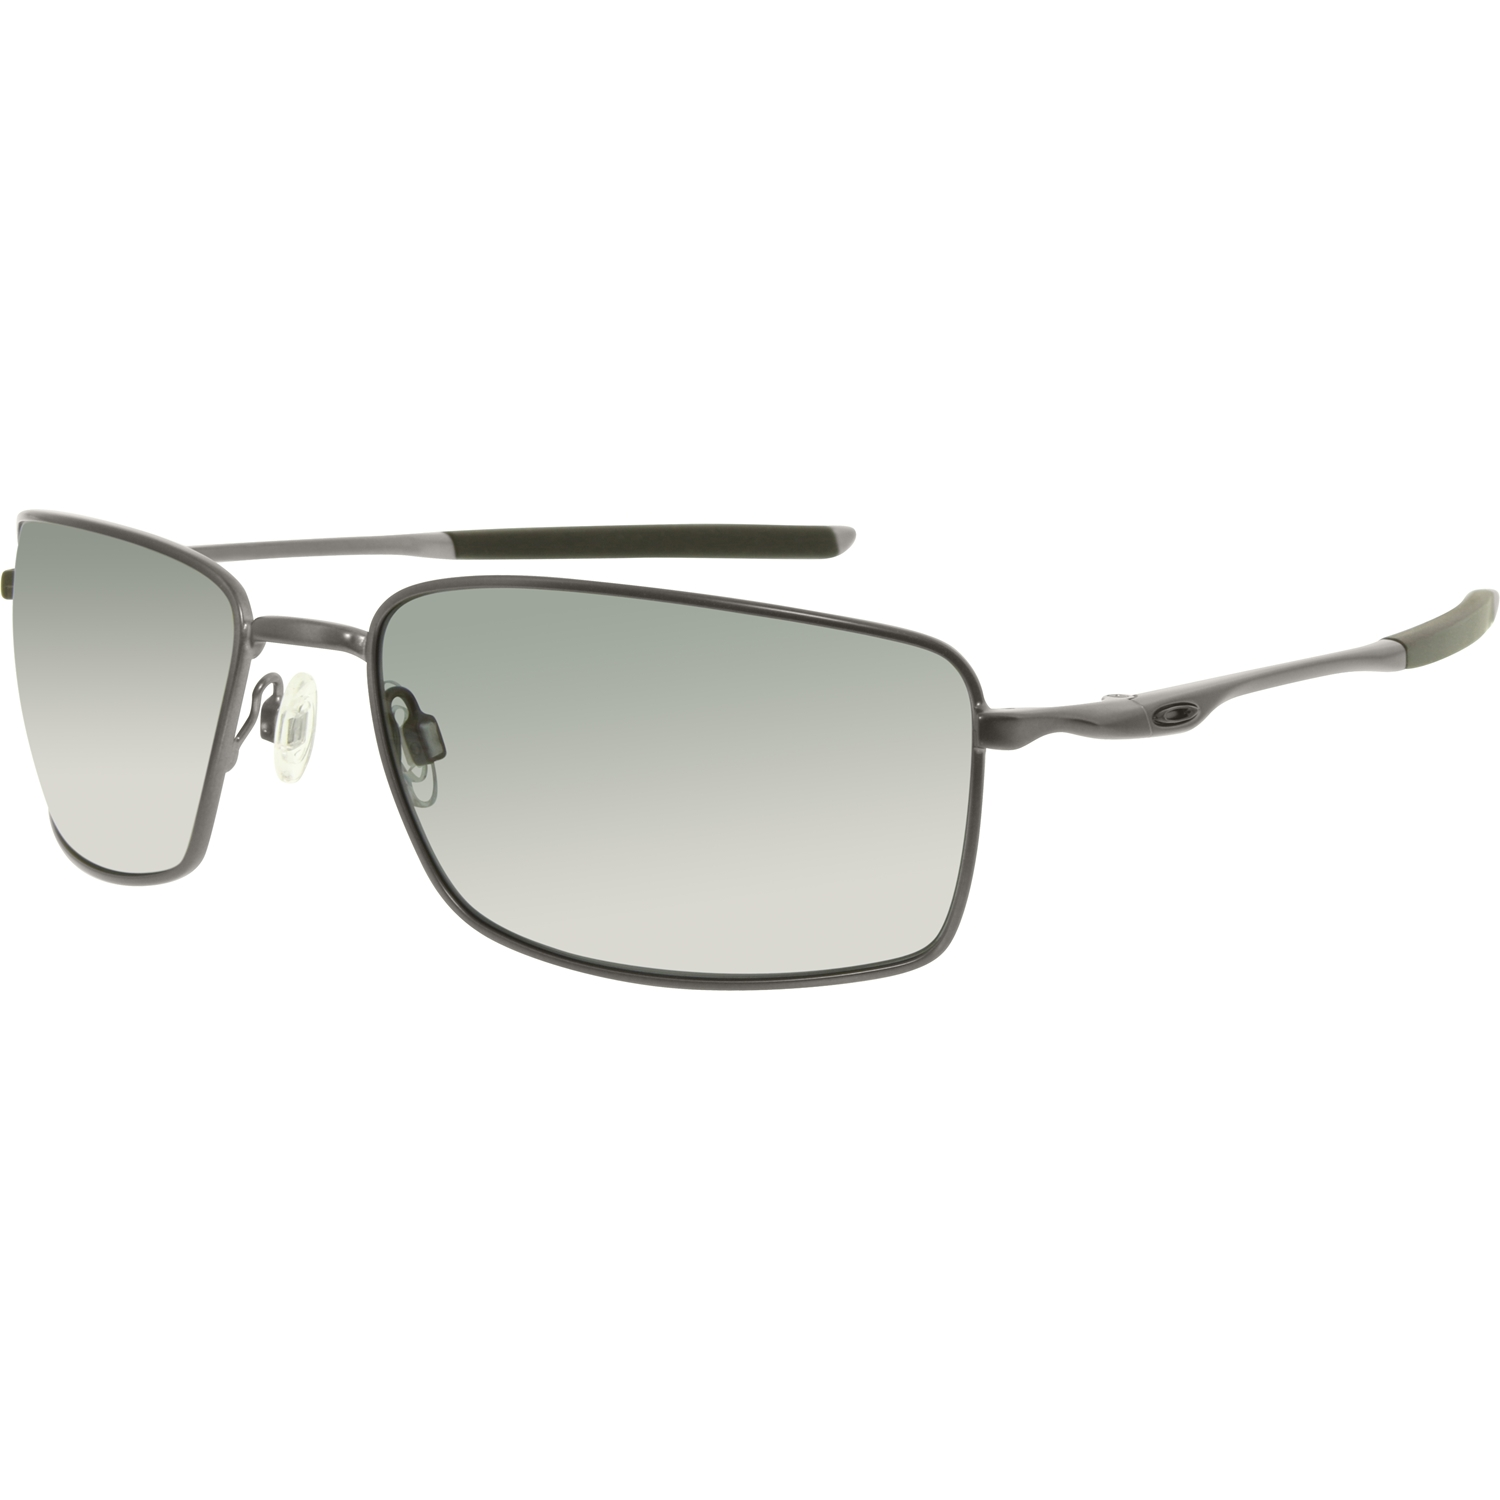 9d4b1075d87 Oakley Men s Polarized Square Wire OO4075-04 Gunmetal Rectangle ...